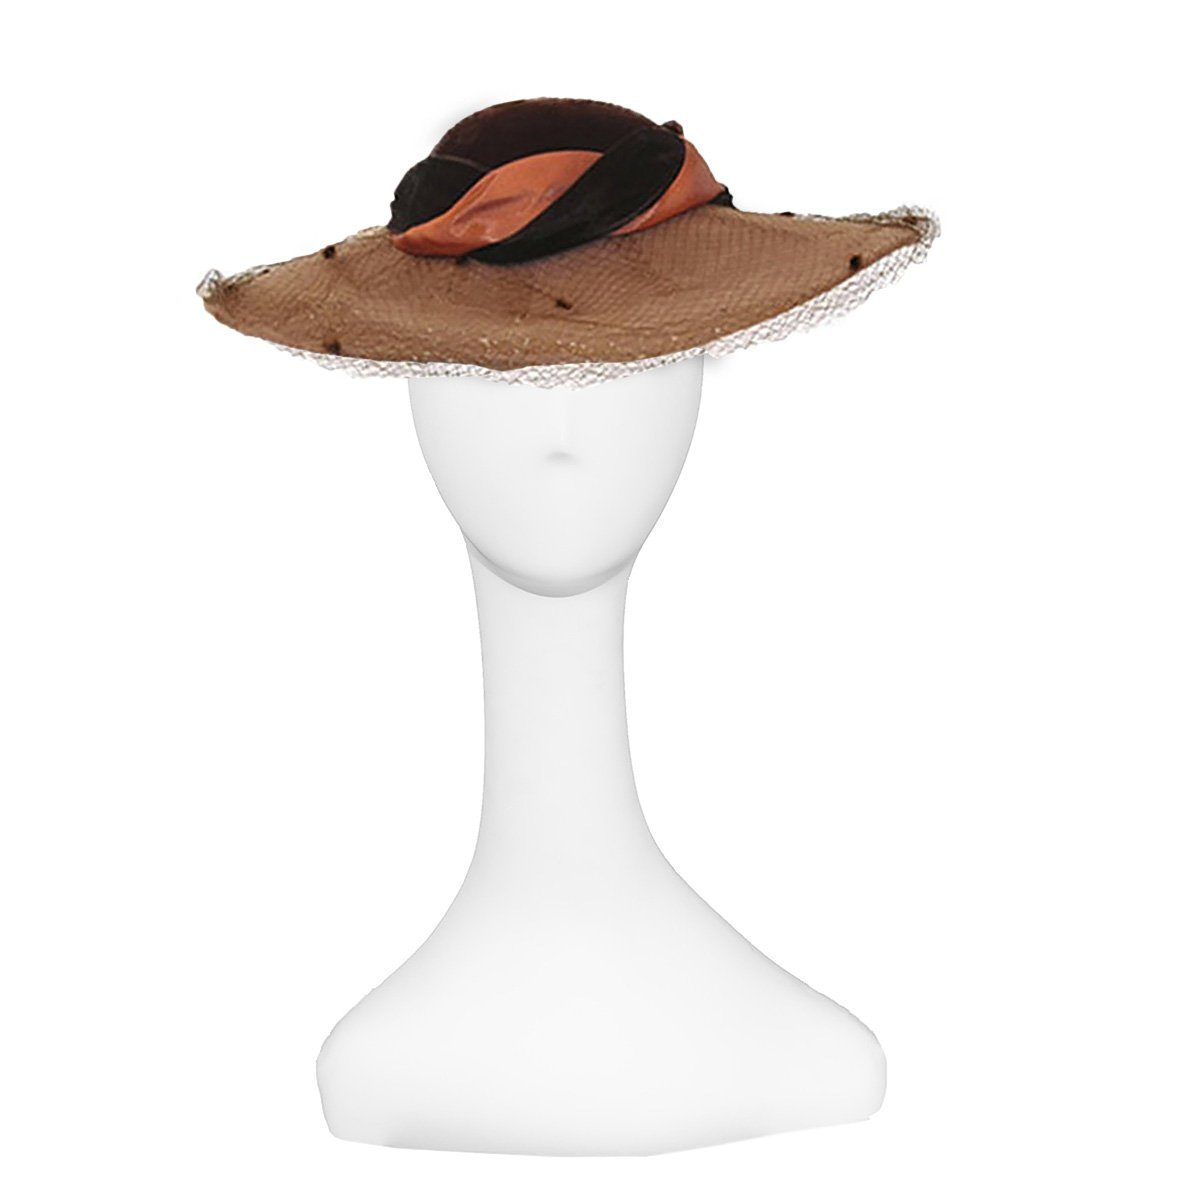 Brown Wool Felt Wide-brim Hat with Netting by Whittall & Javits